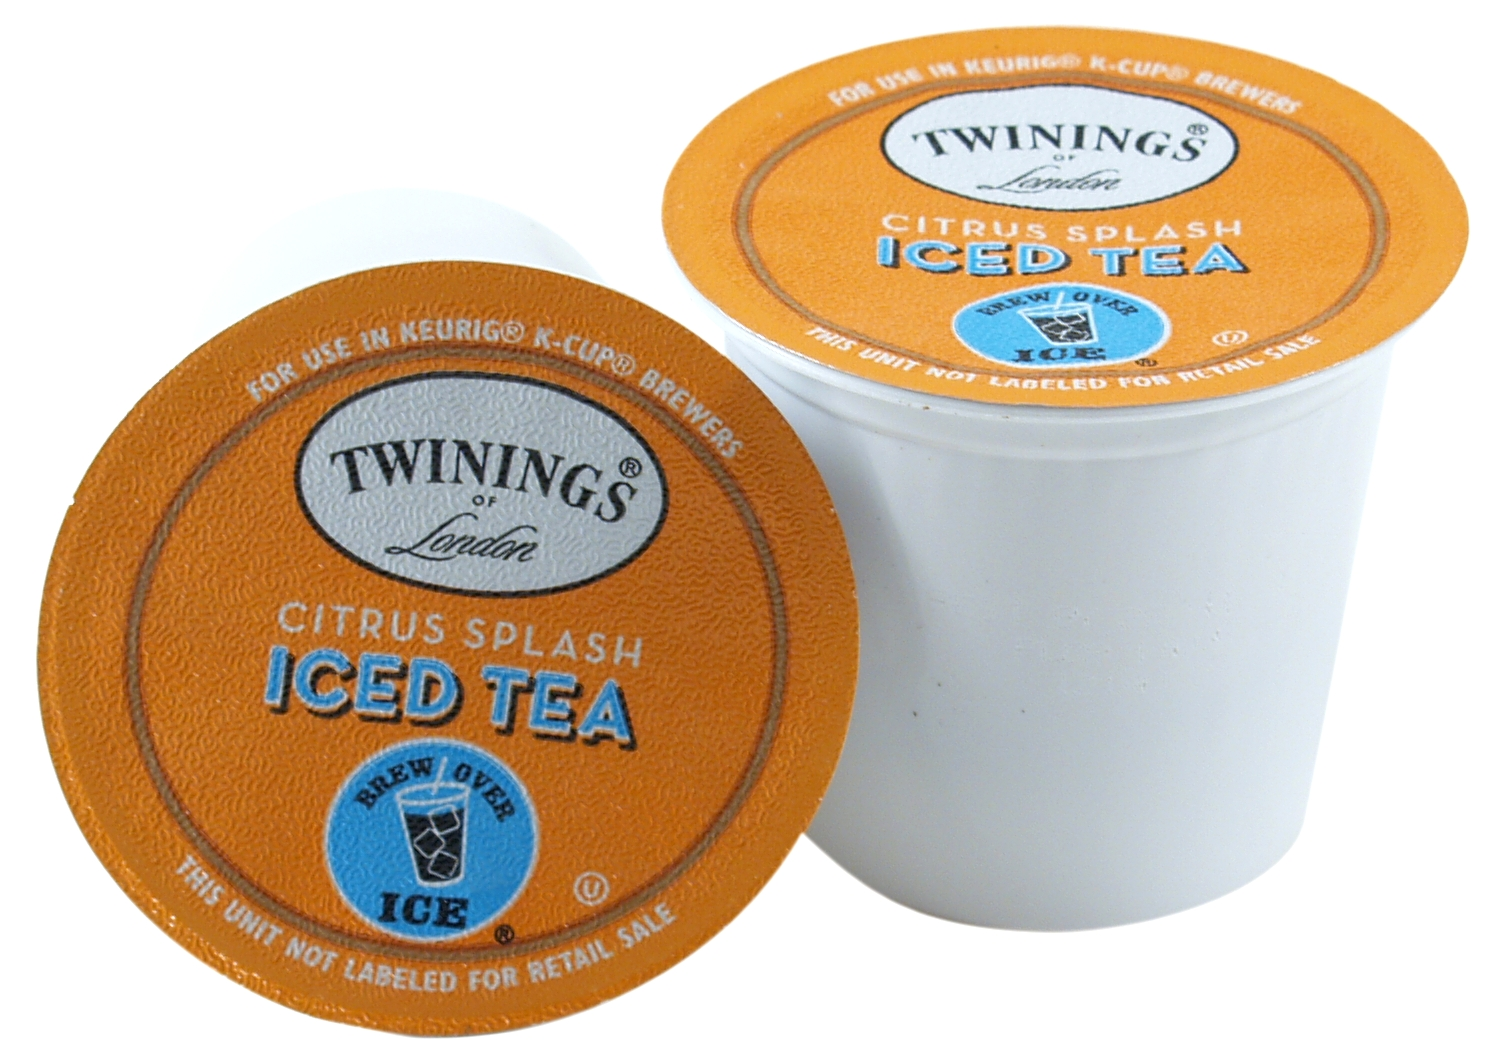 Twinings Citrus Splash Iced Tea Keurig K-Cup Packs, 72 Count - Exceeded Best-By Date